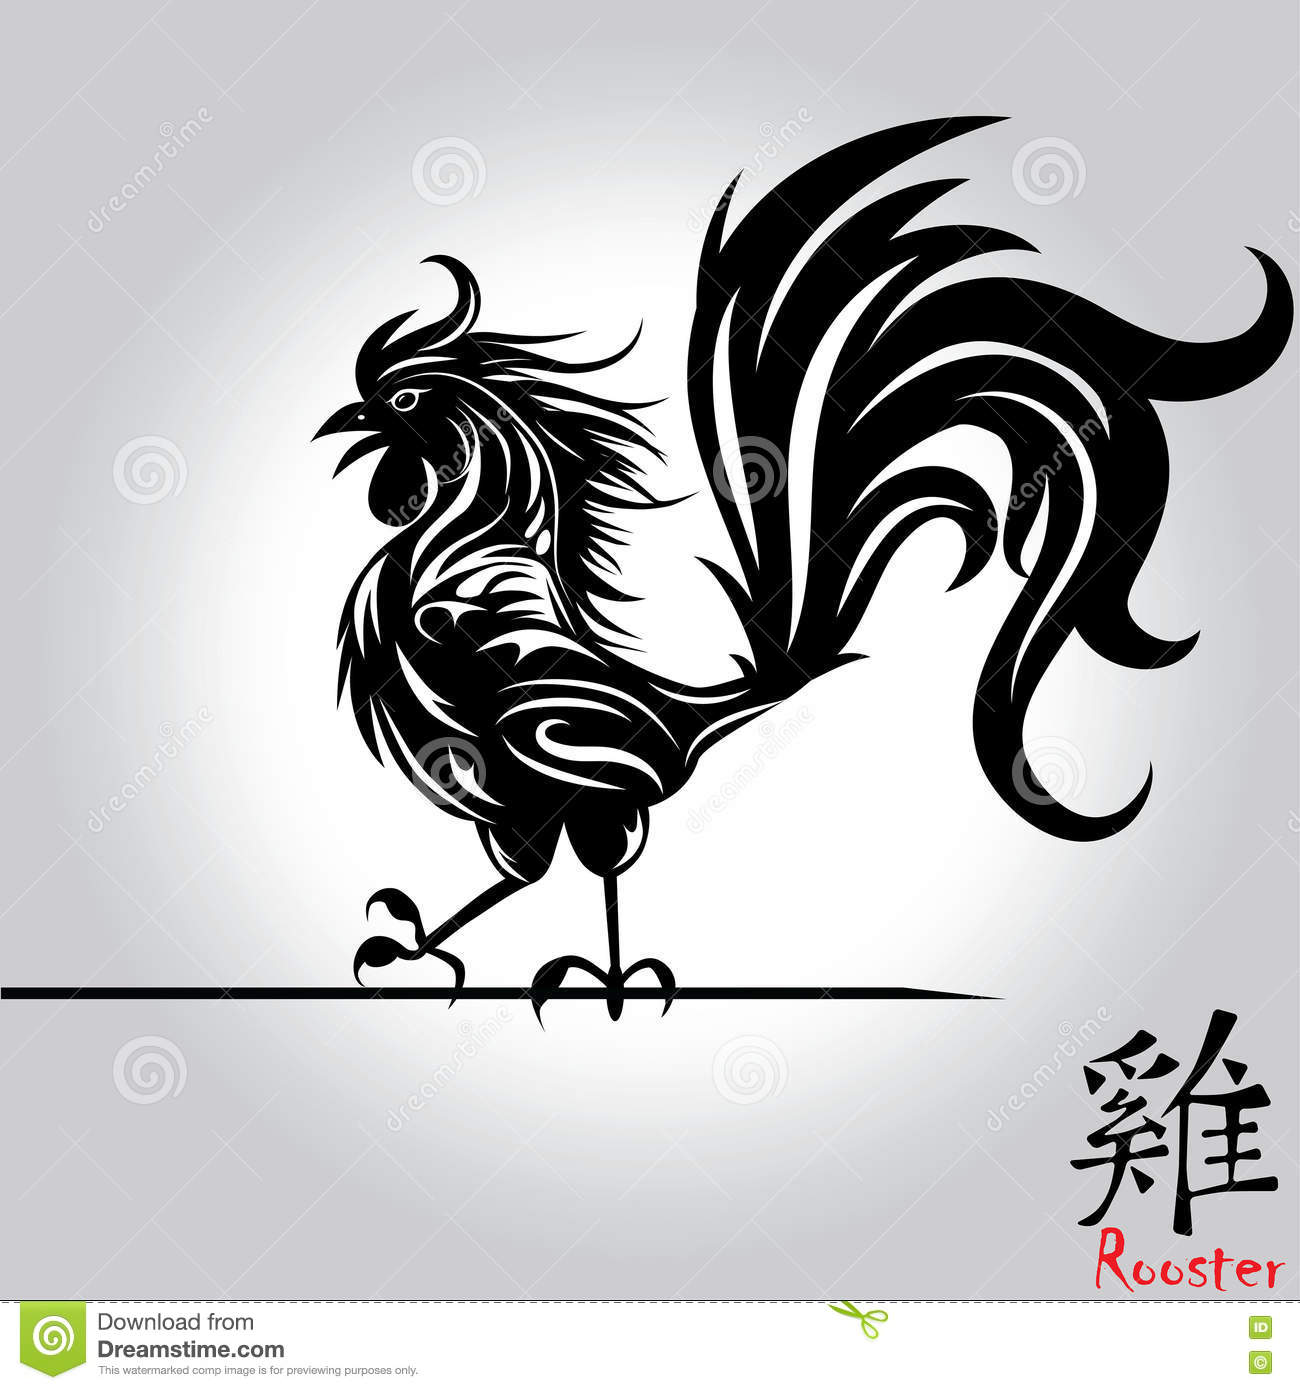 rooster bird tattoo of chinese new year of the rooster grunge file organized in layers for easy. Black Bedroom Furniture Sets. Home Design Ideas